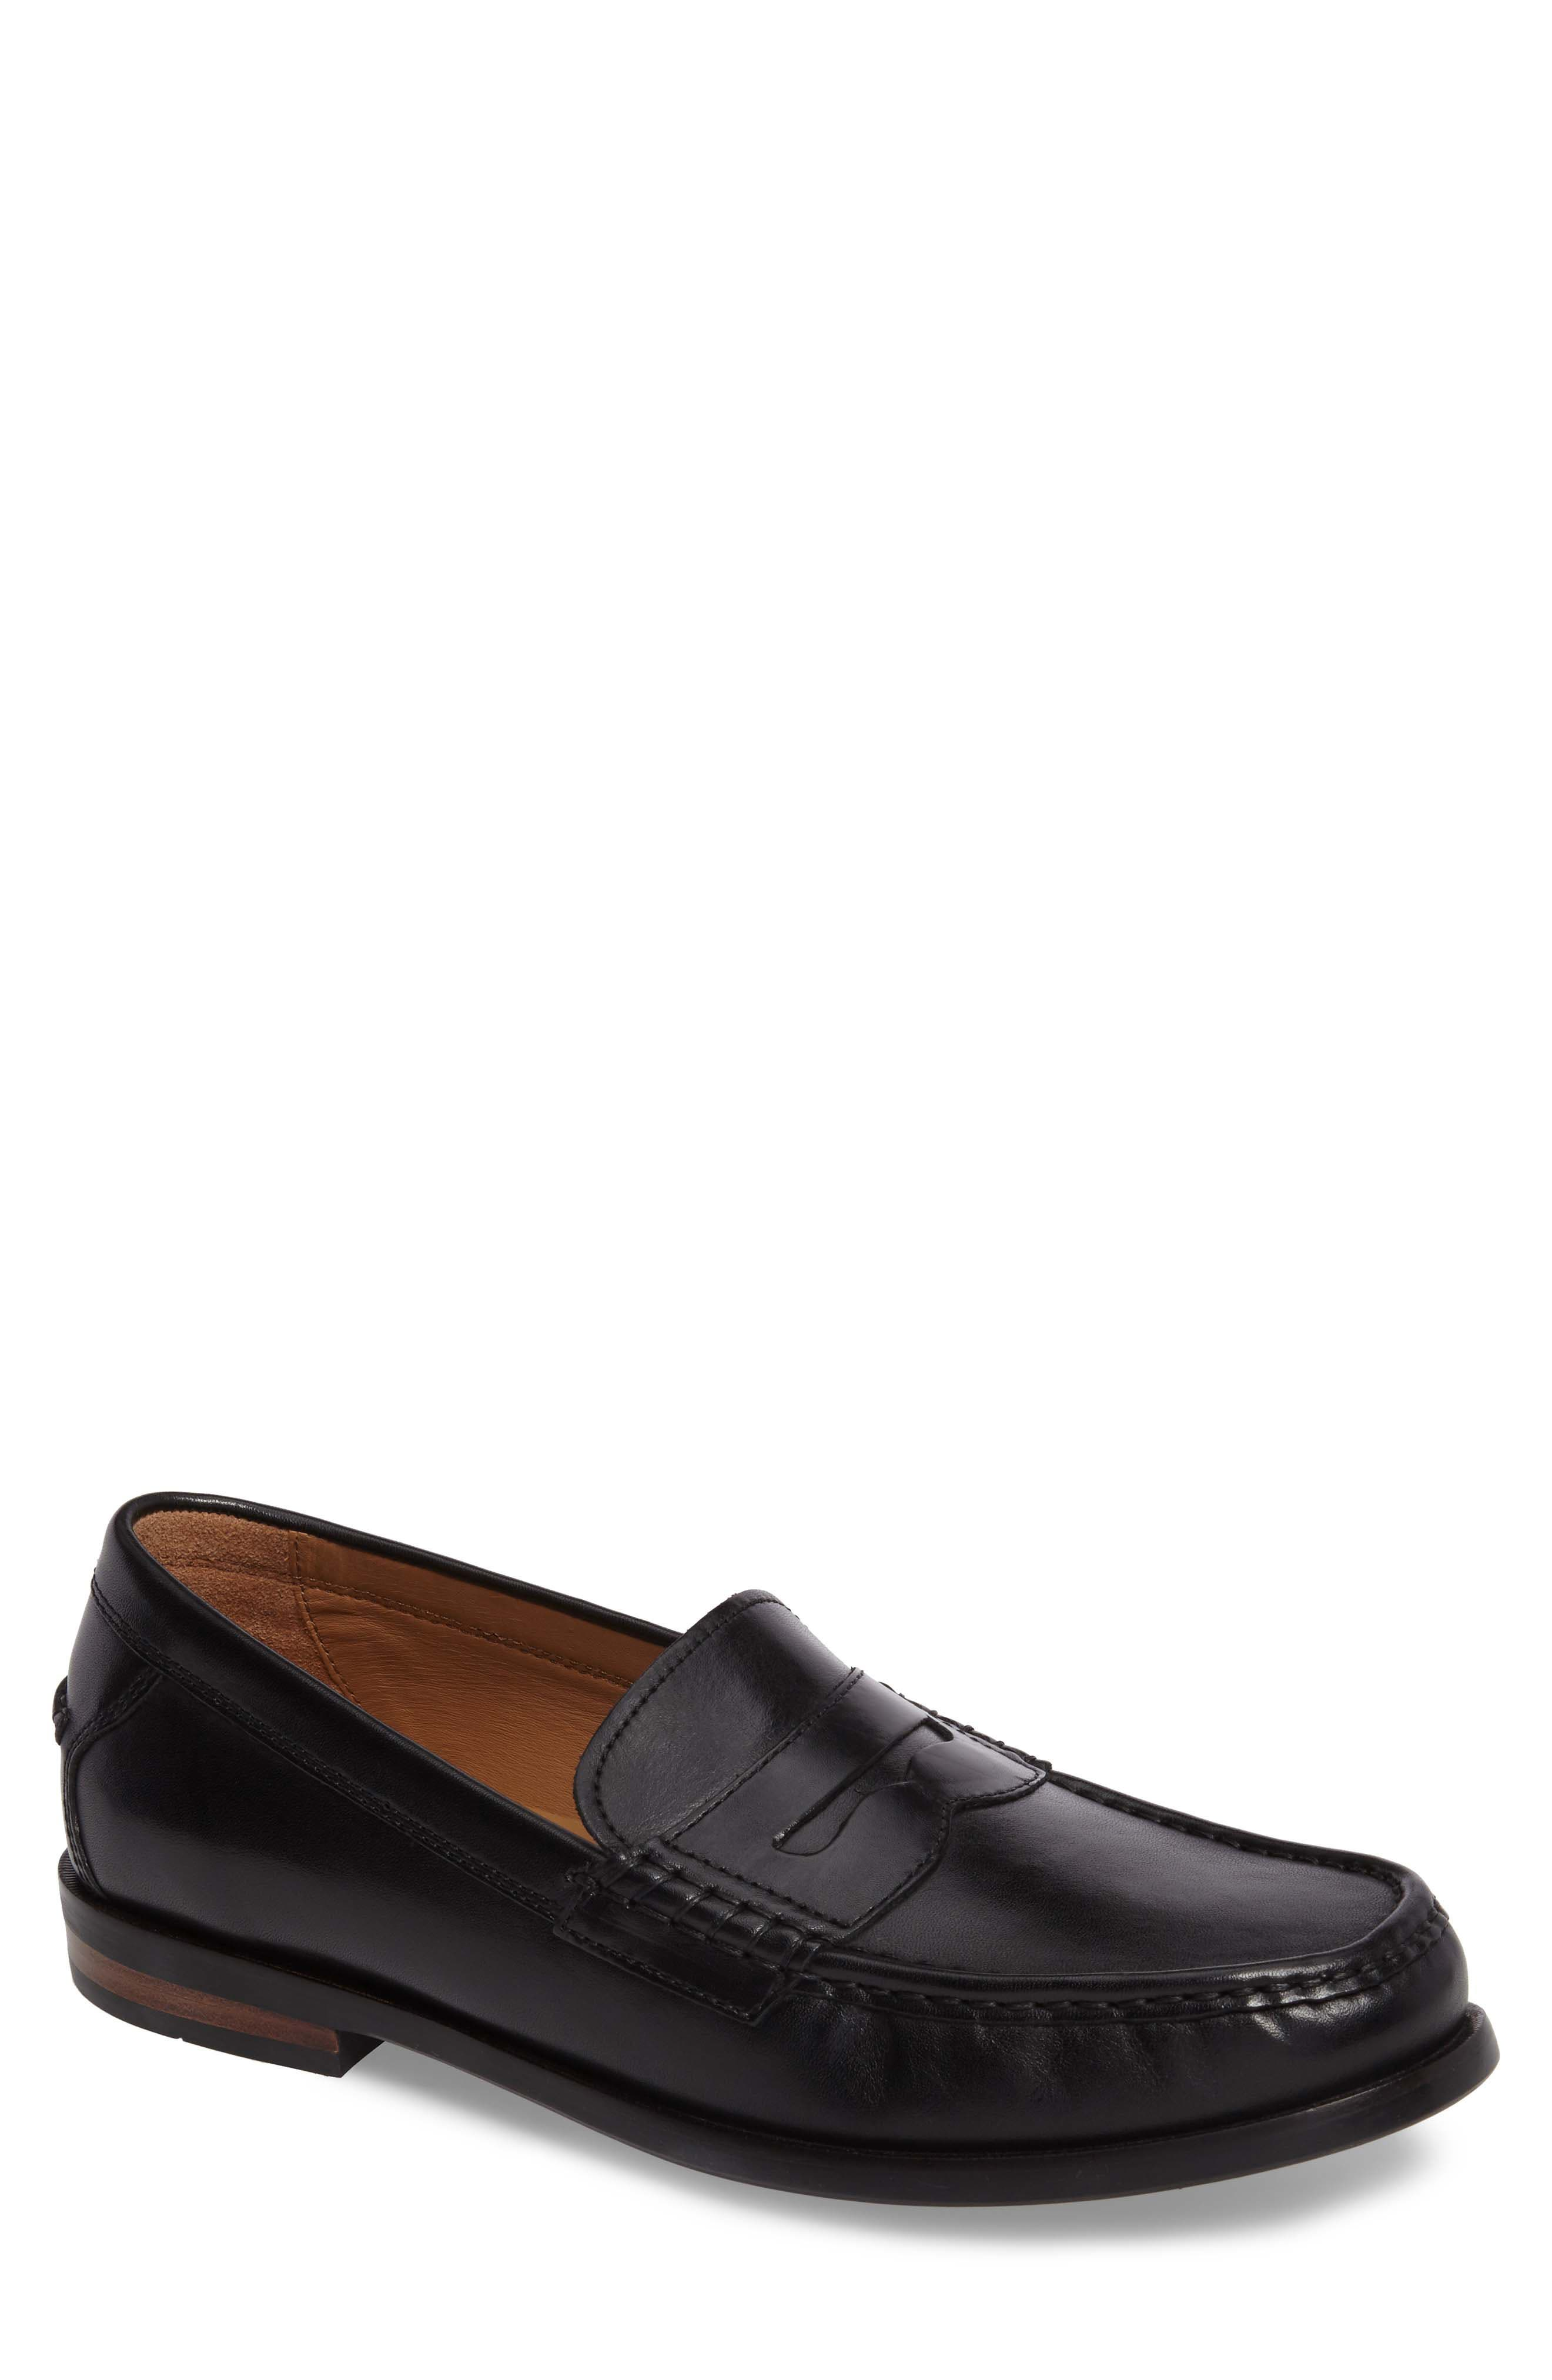 Pinch Friday Penny Loafer,                         Main,                         color, 001